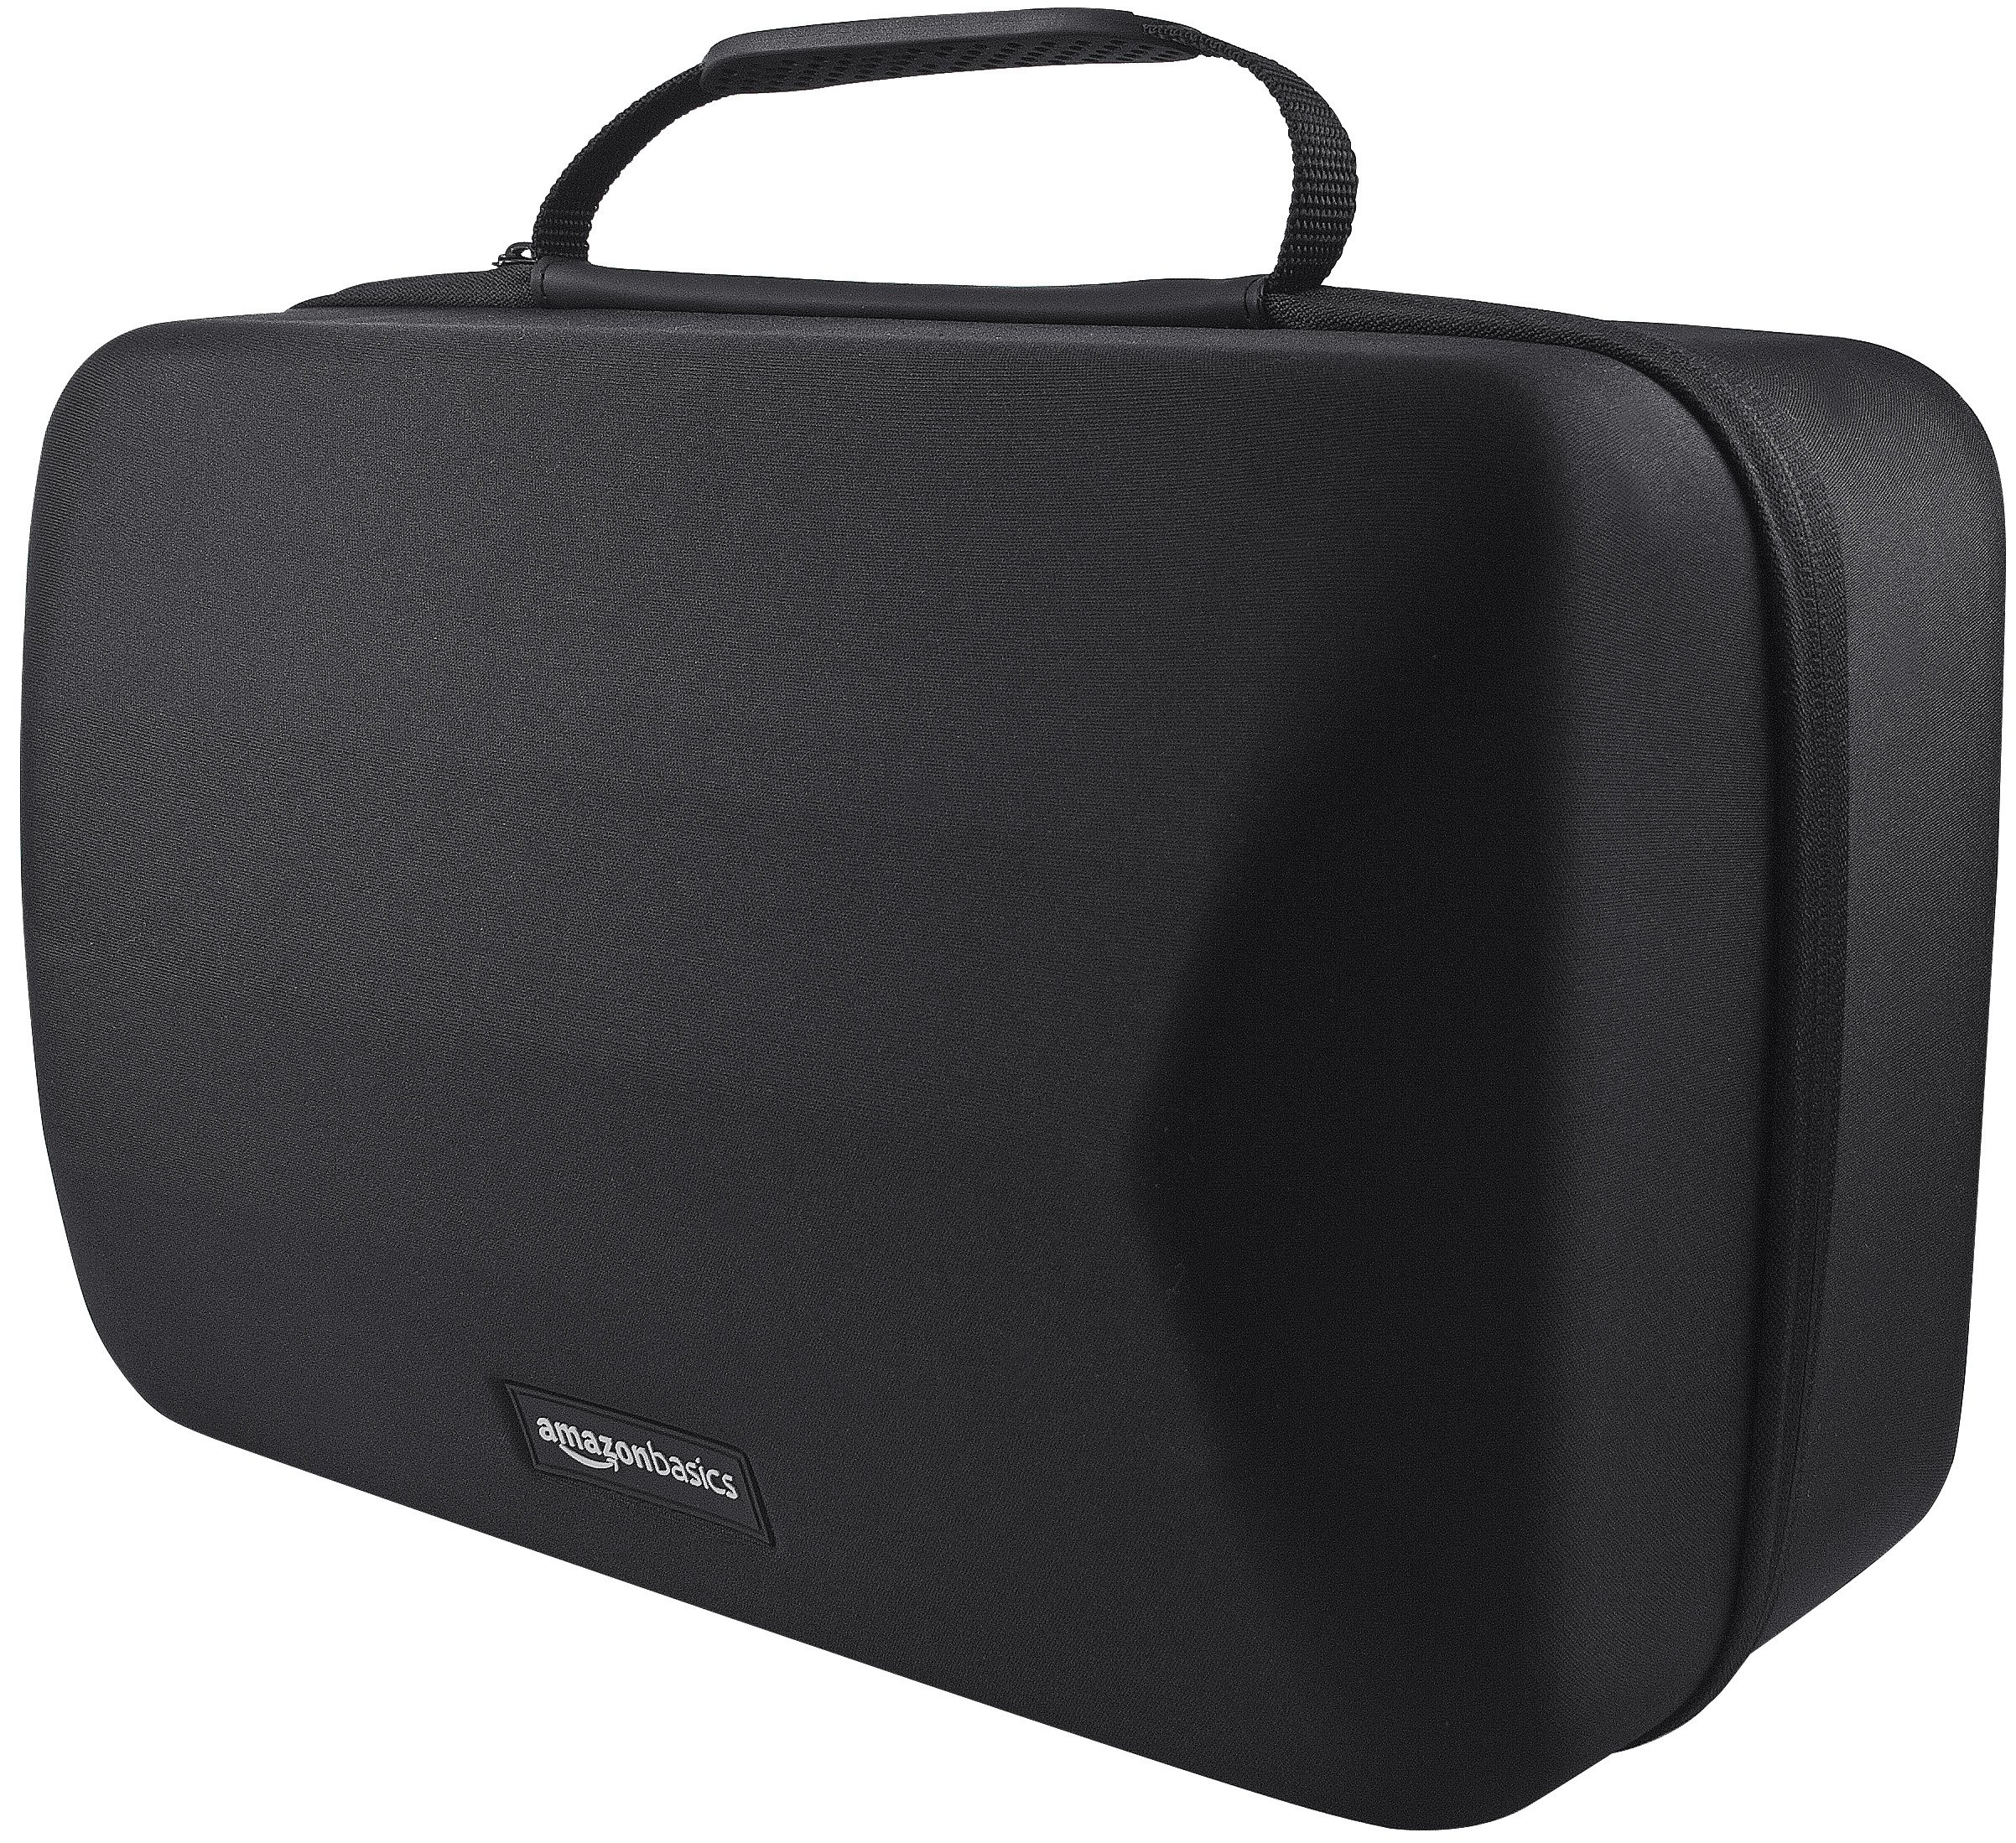 AmazonBasics Carrying Case for PlayStation VR Headset and Accessories, Black